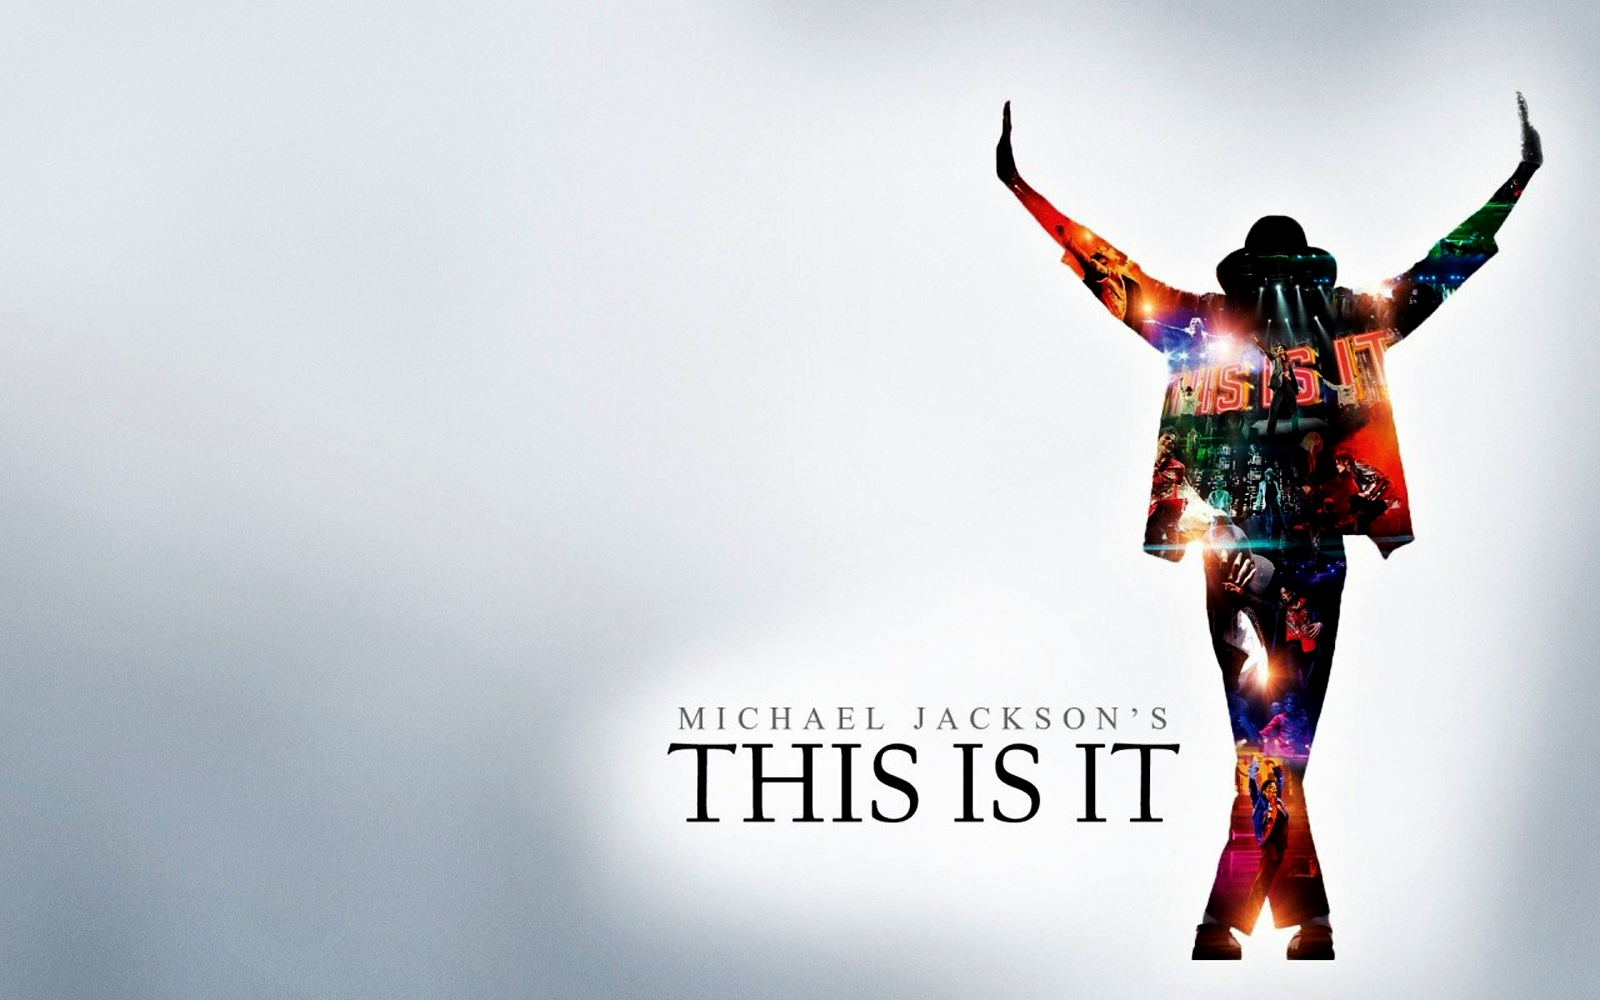 Michael Jackson HD Wallpapers For Desktop